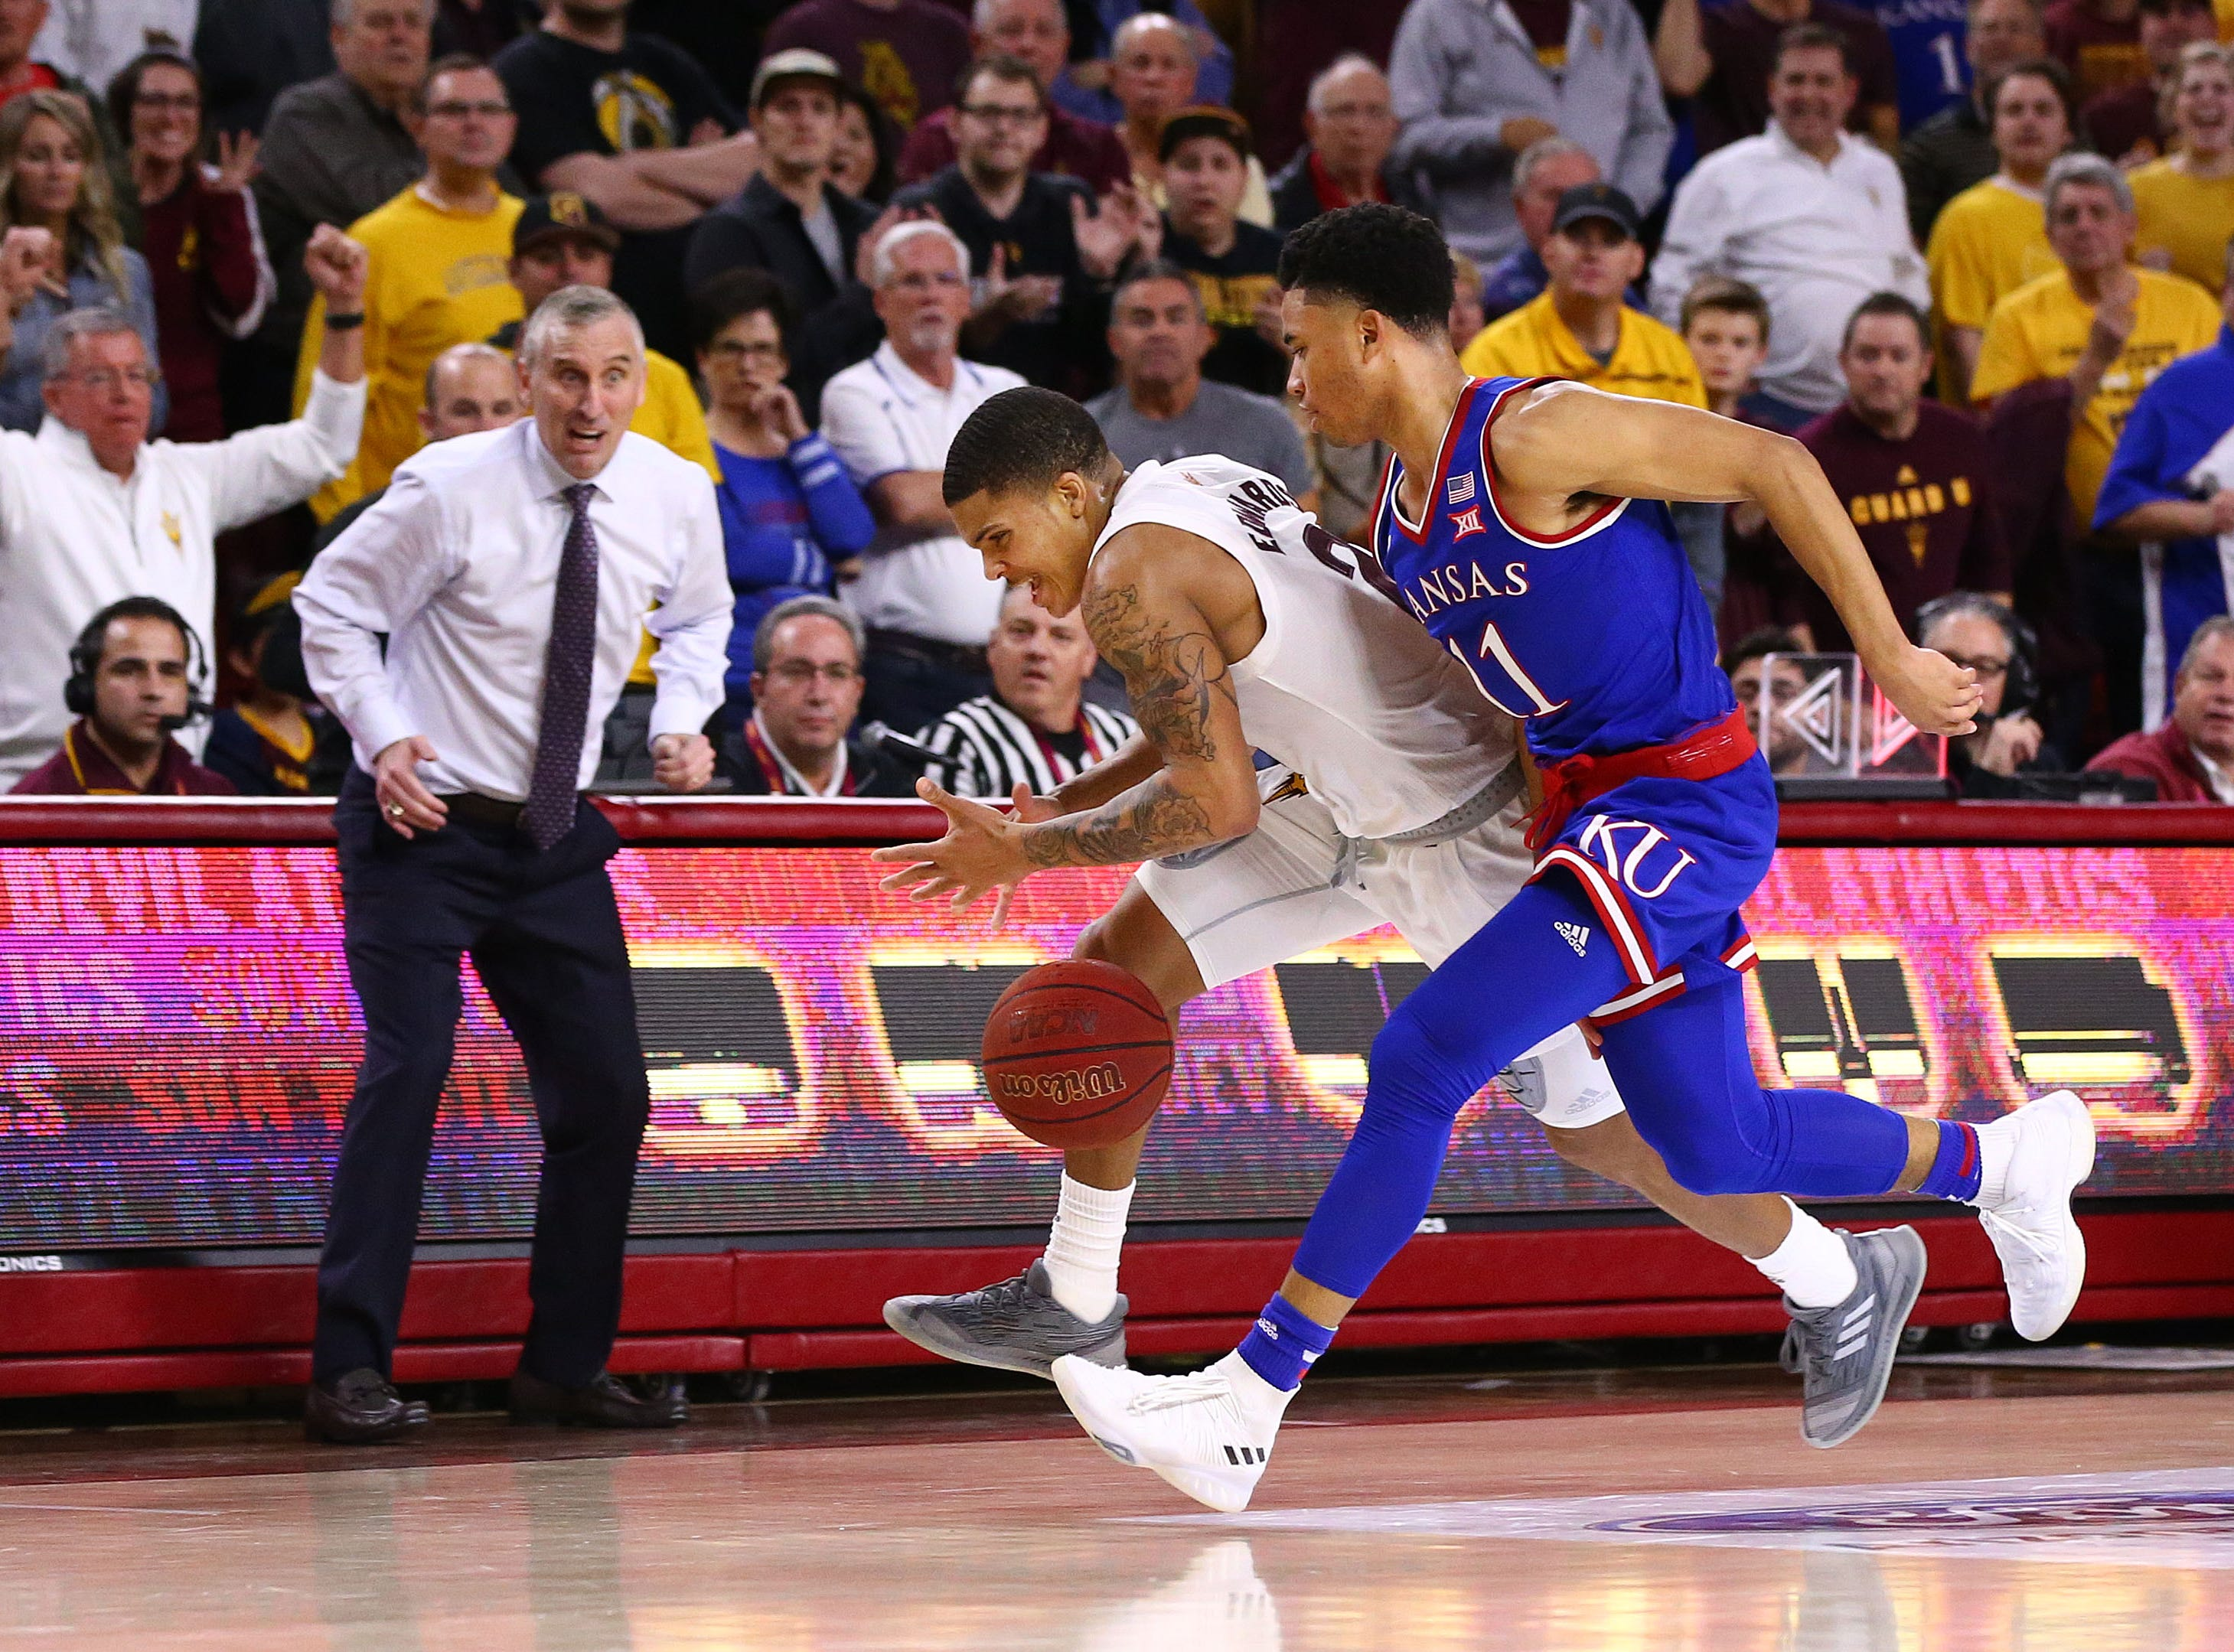 Arizona State recovers a loose ball as Rob Edwards and Kansas guard Devon Dotson chase late in the second half on Dec. 22 at Wells Fargo Arena.